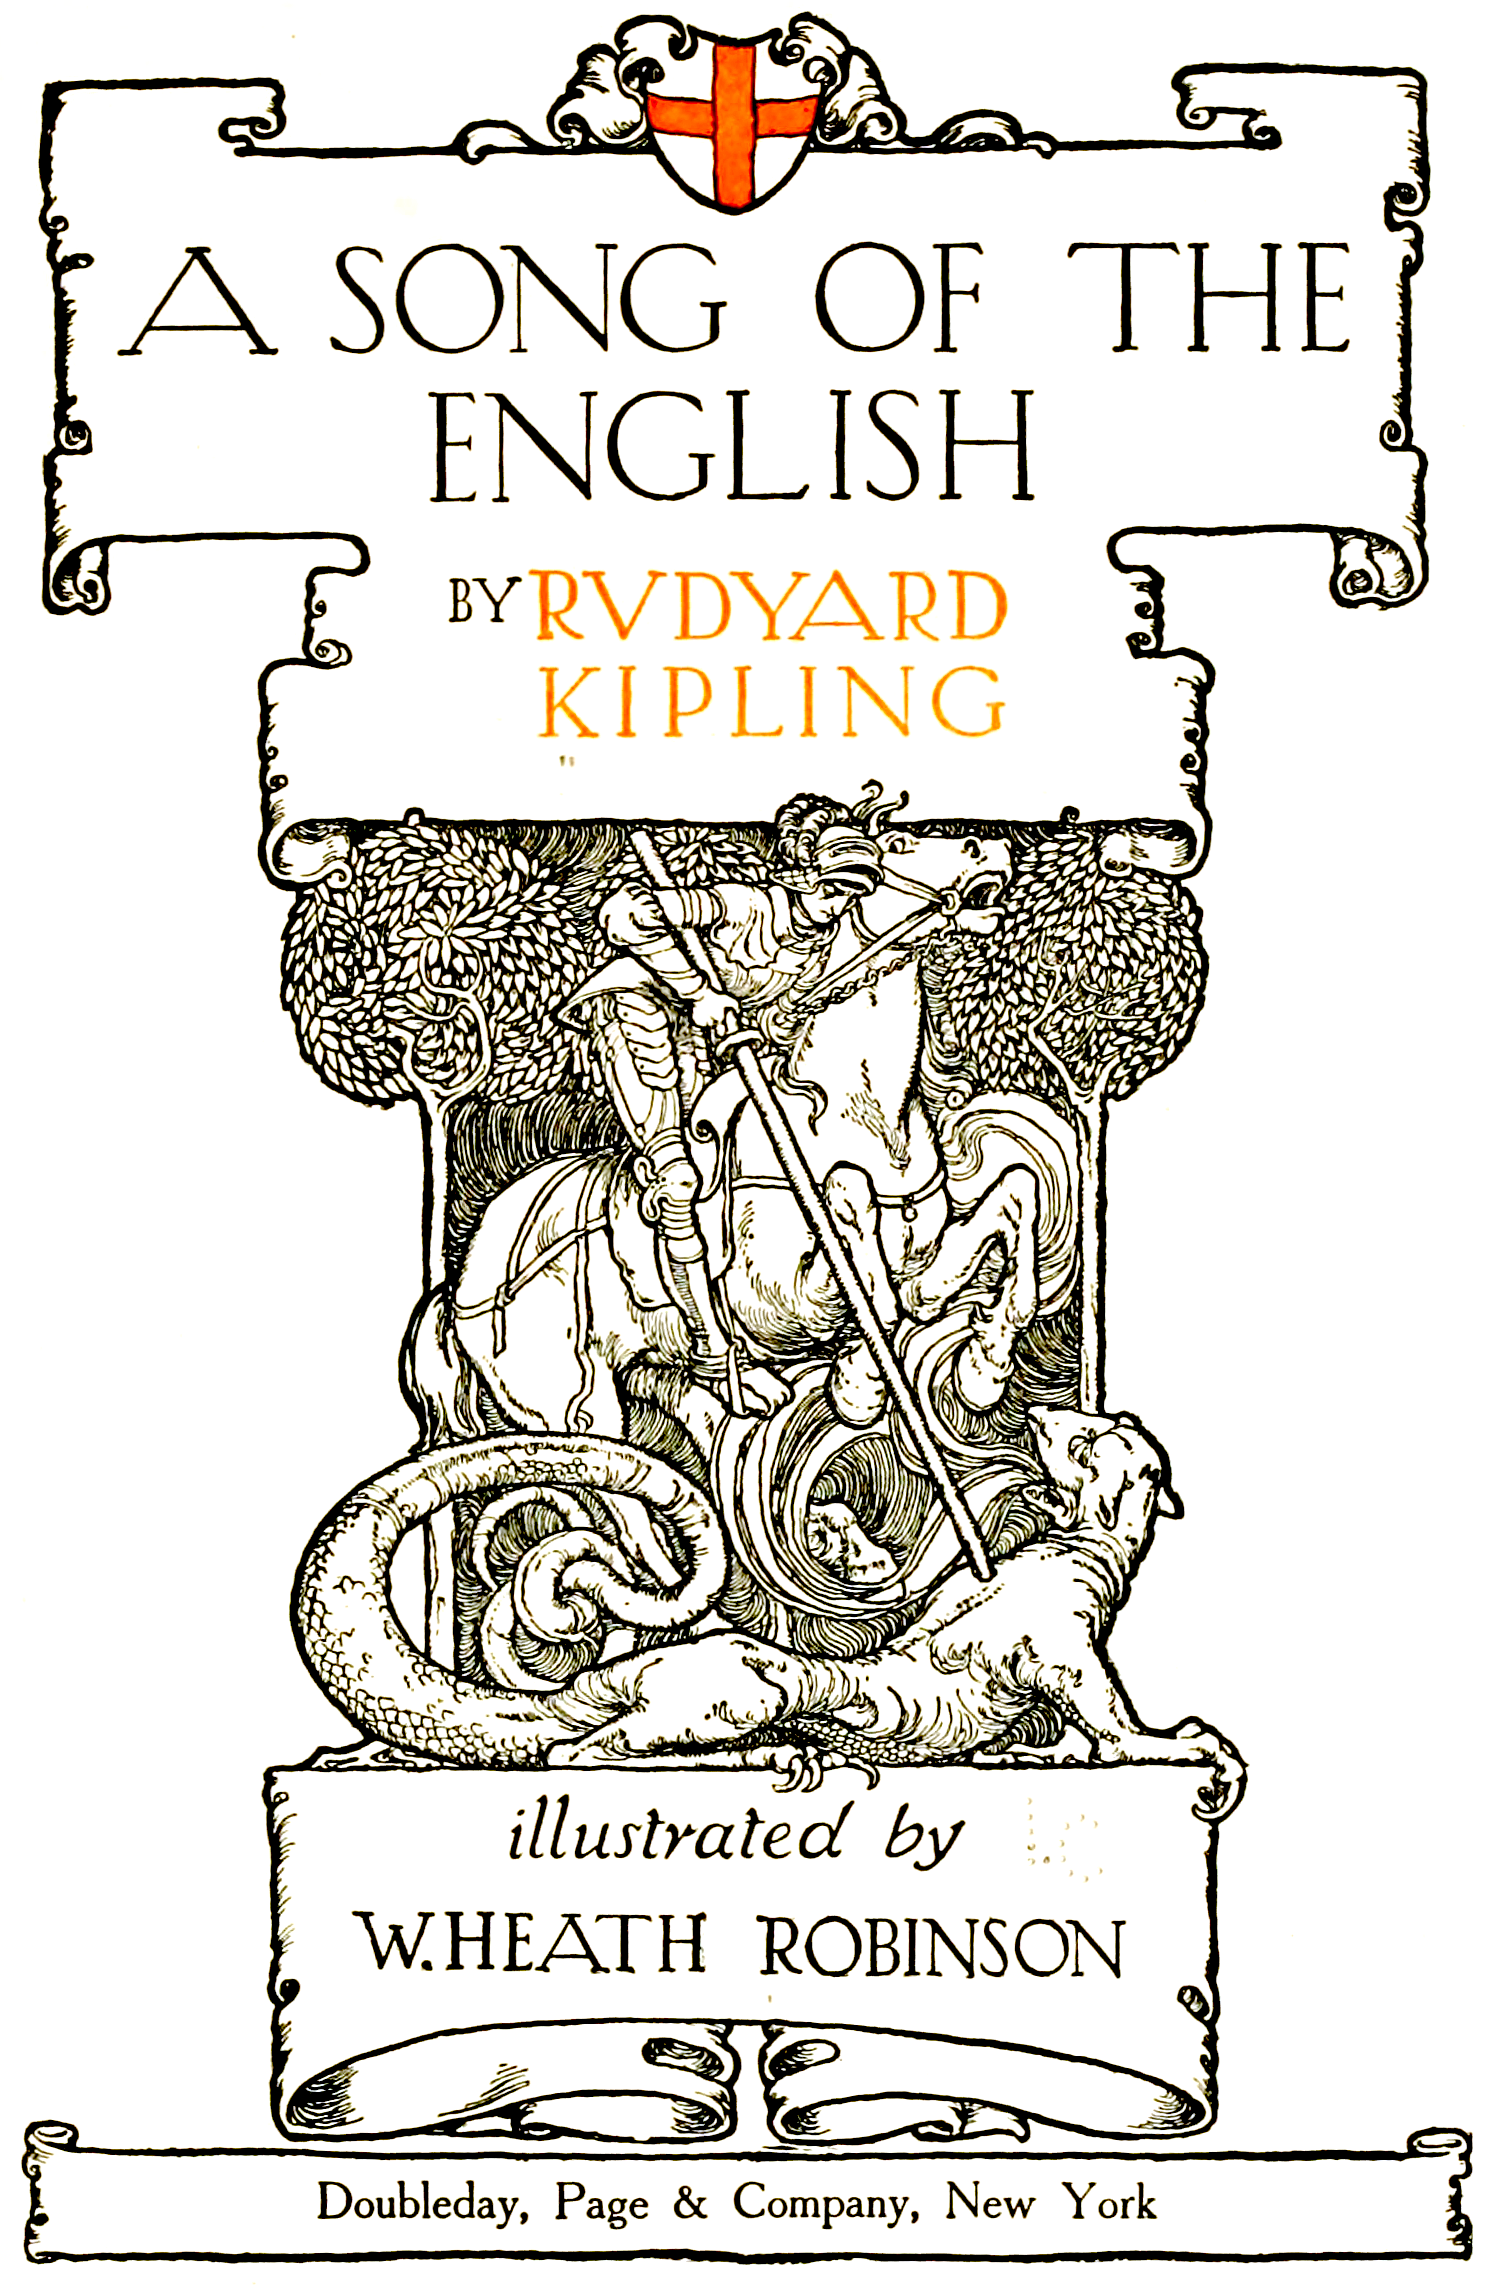 Title_design_of_A_song_of_the_English_(1909)